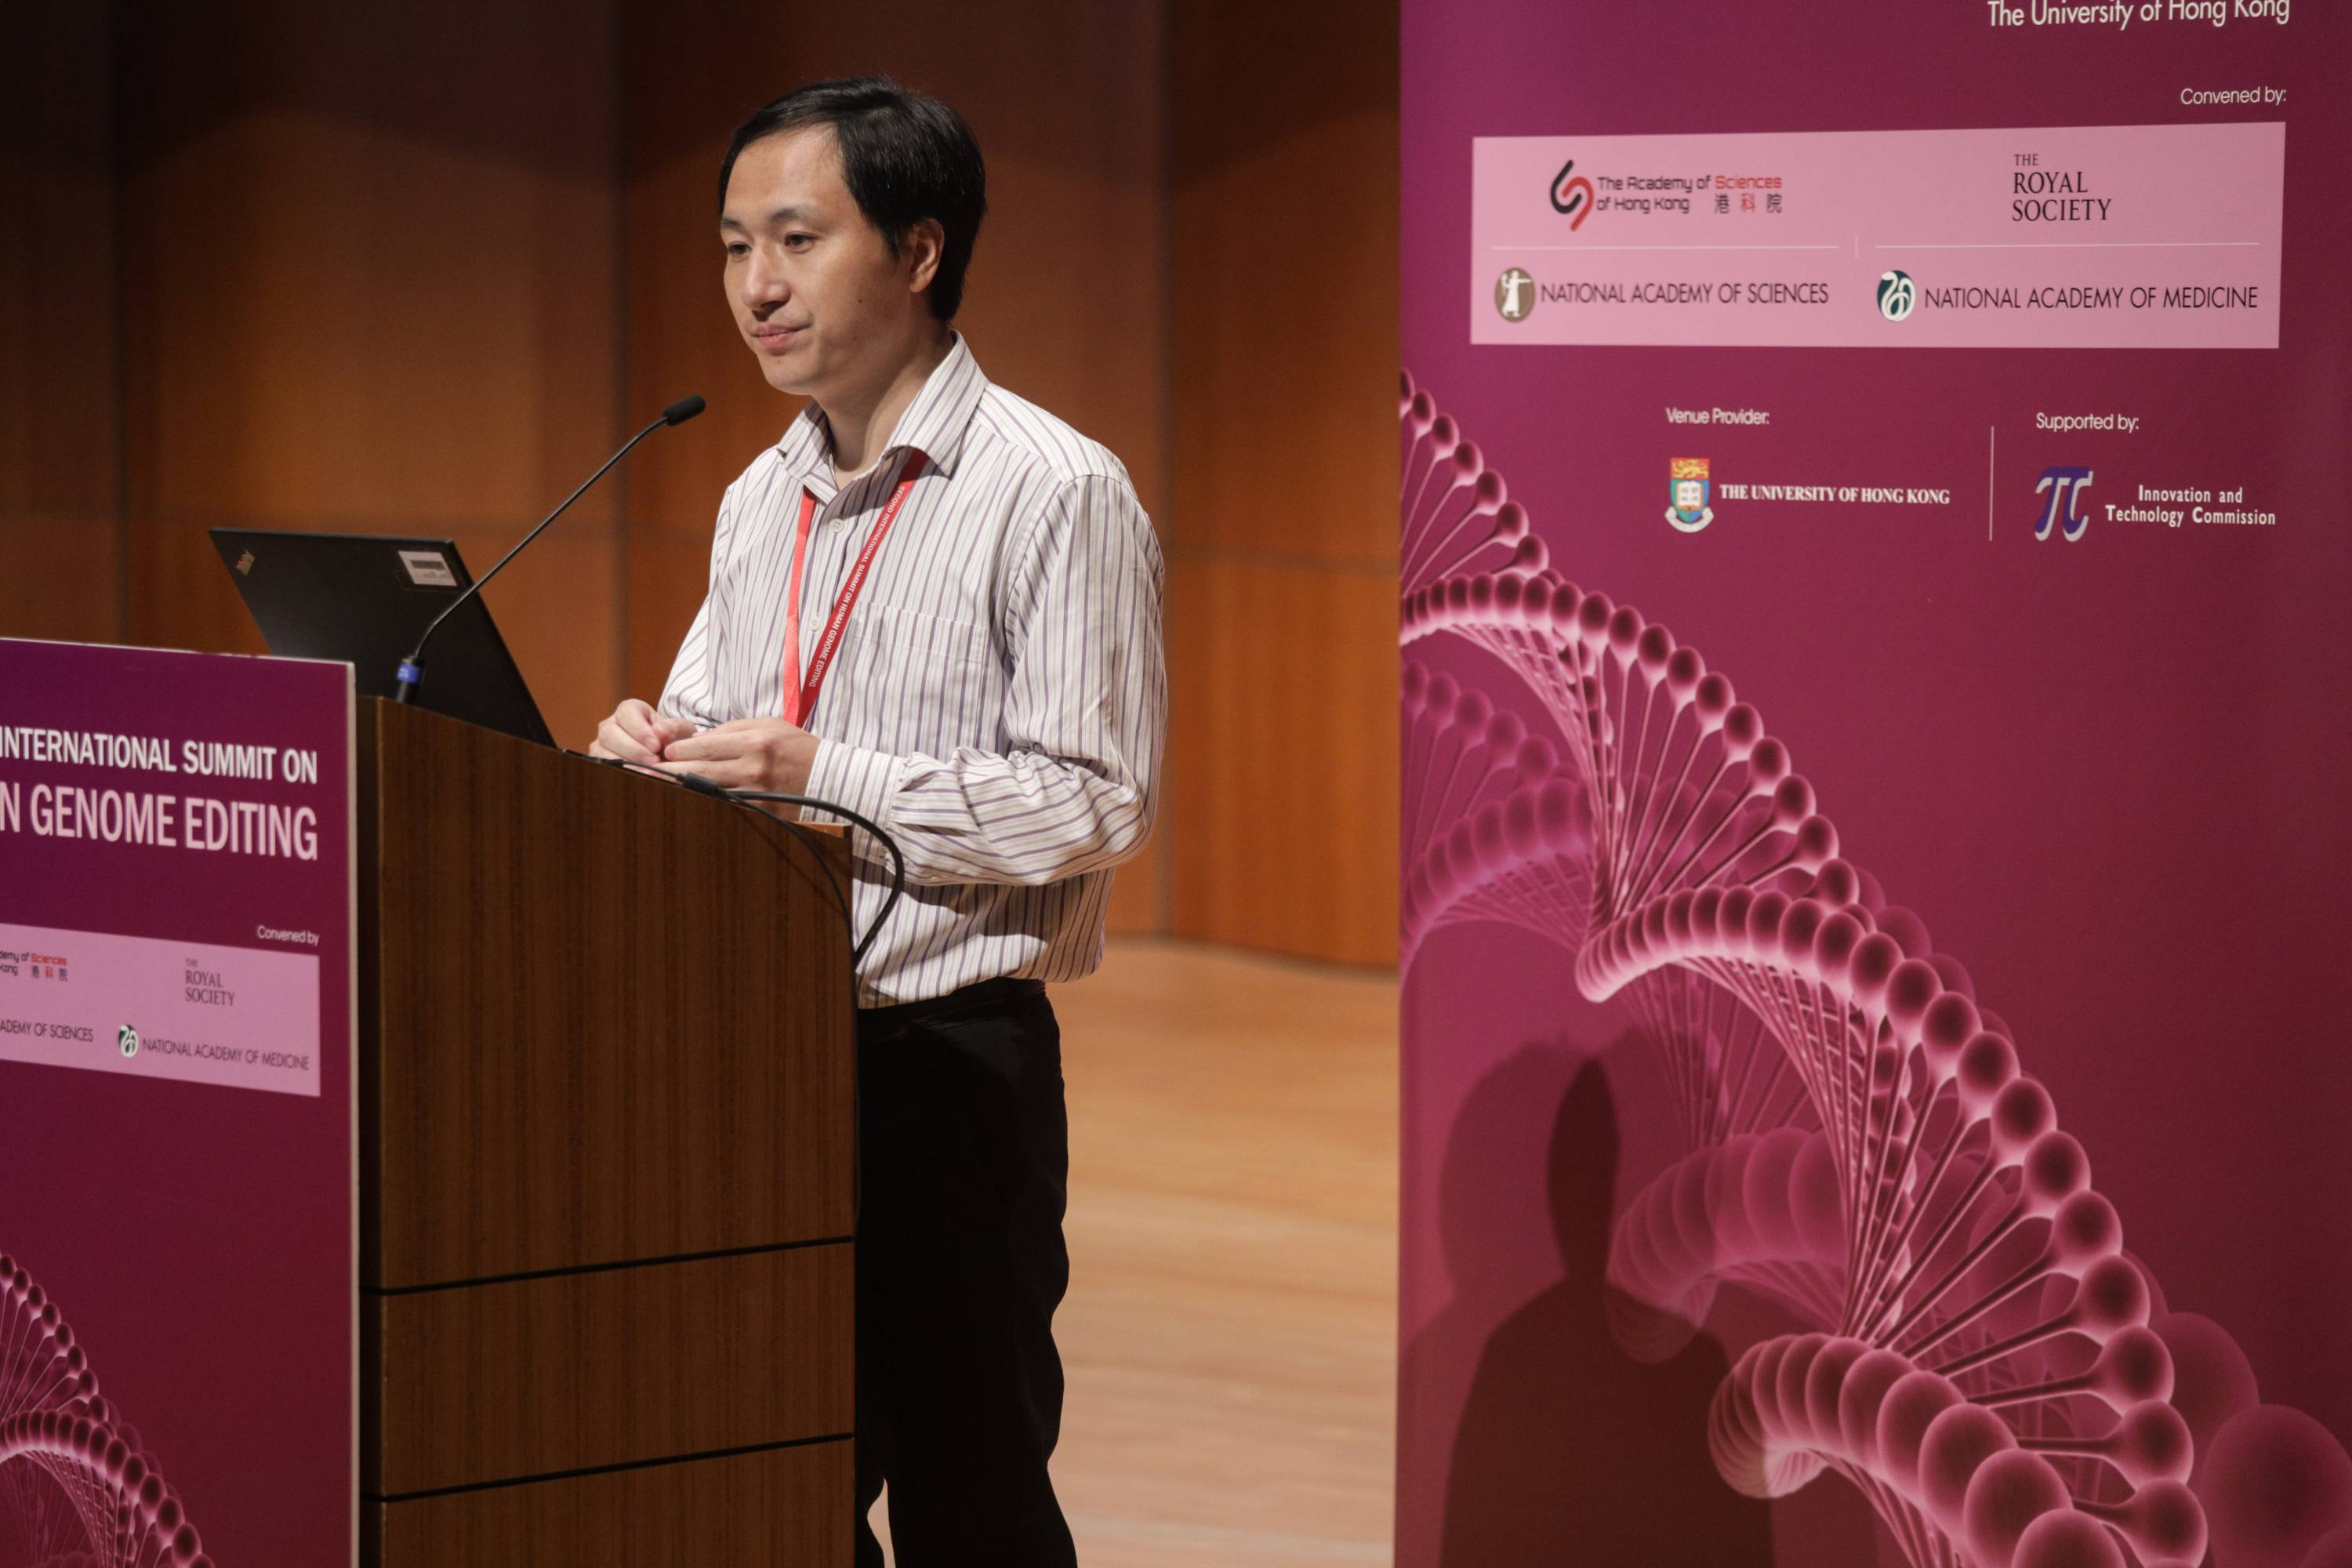 Chinese geneticist He Jiankui of the Southern University of